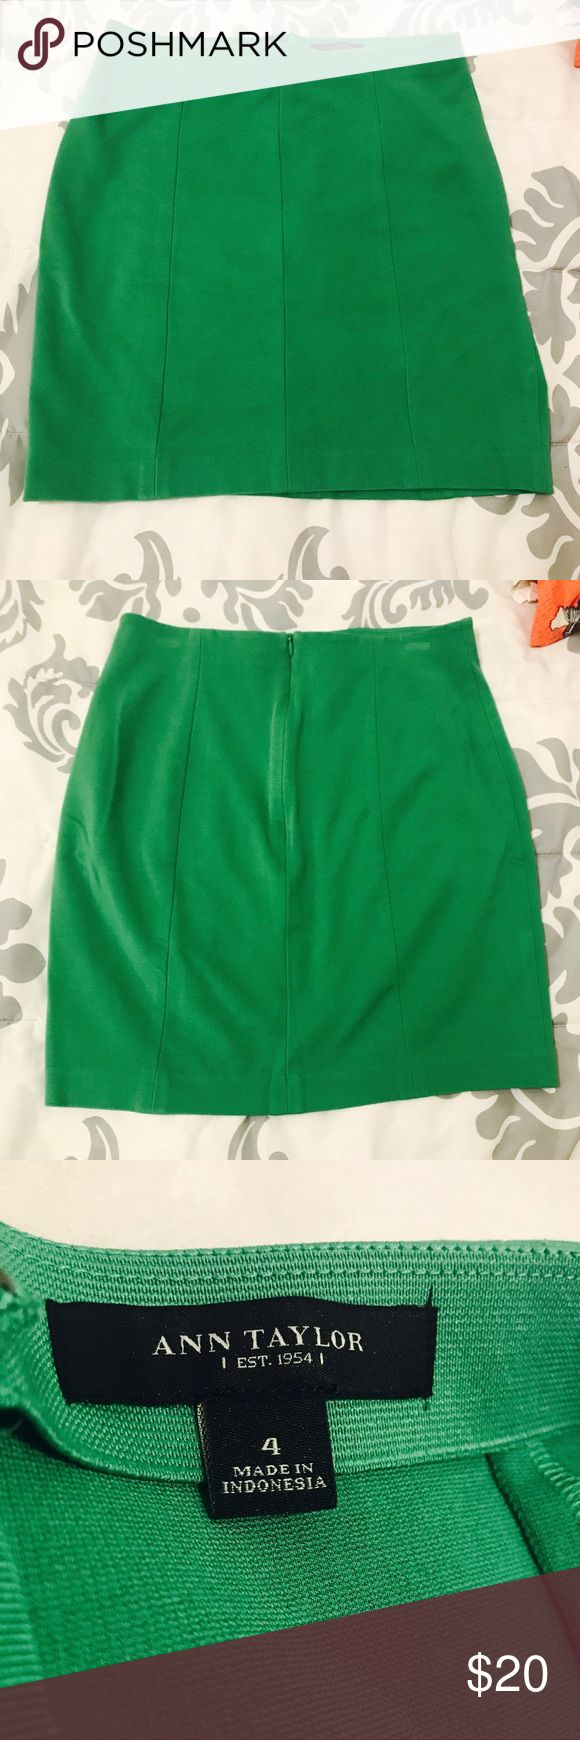 """Ann Taylor Emerald Green """"Mini"""" Skirt Beautiful emerald green skirt, classic Ann Taylor! Super classy but also playful and flattering. Letting go of this piece only because it is a bit too big for me now. Worn only a handful of times, in awesome condition! Only slight flaw are small tension marks on either side where hanger clasps were (tried to picture but so feint/unnoticeable they didn't really turn out; will reflect in price). Open to offers and bundle 2+ items for 15% off! Ann Taylor…"""